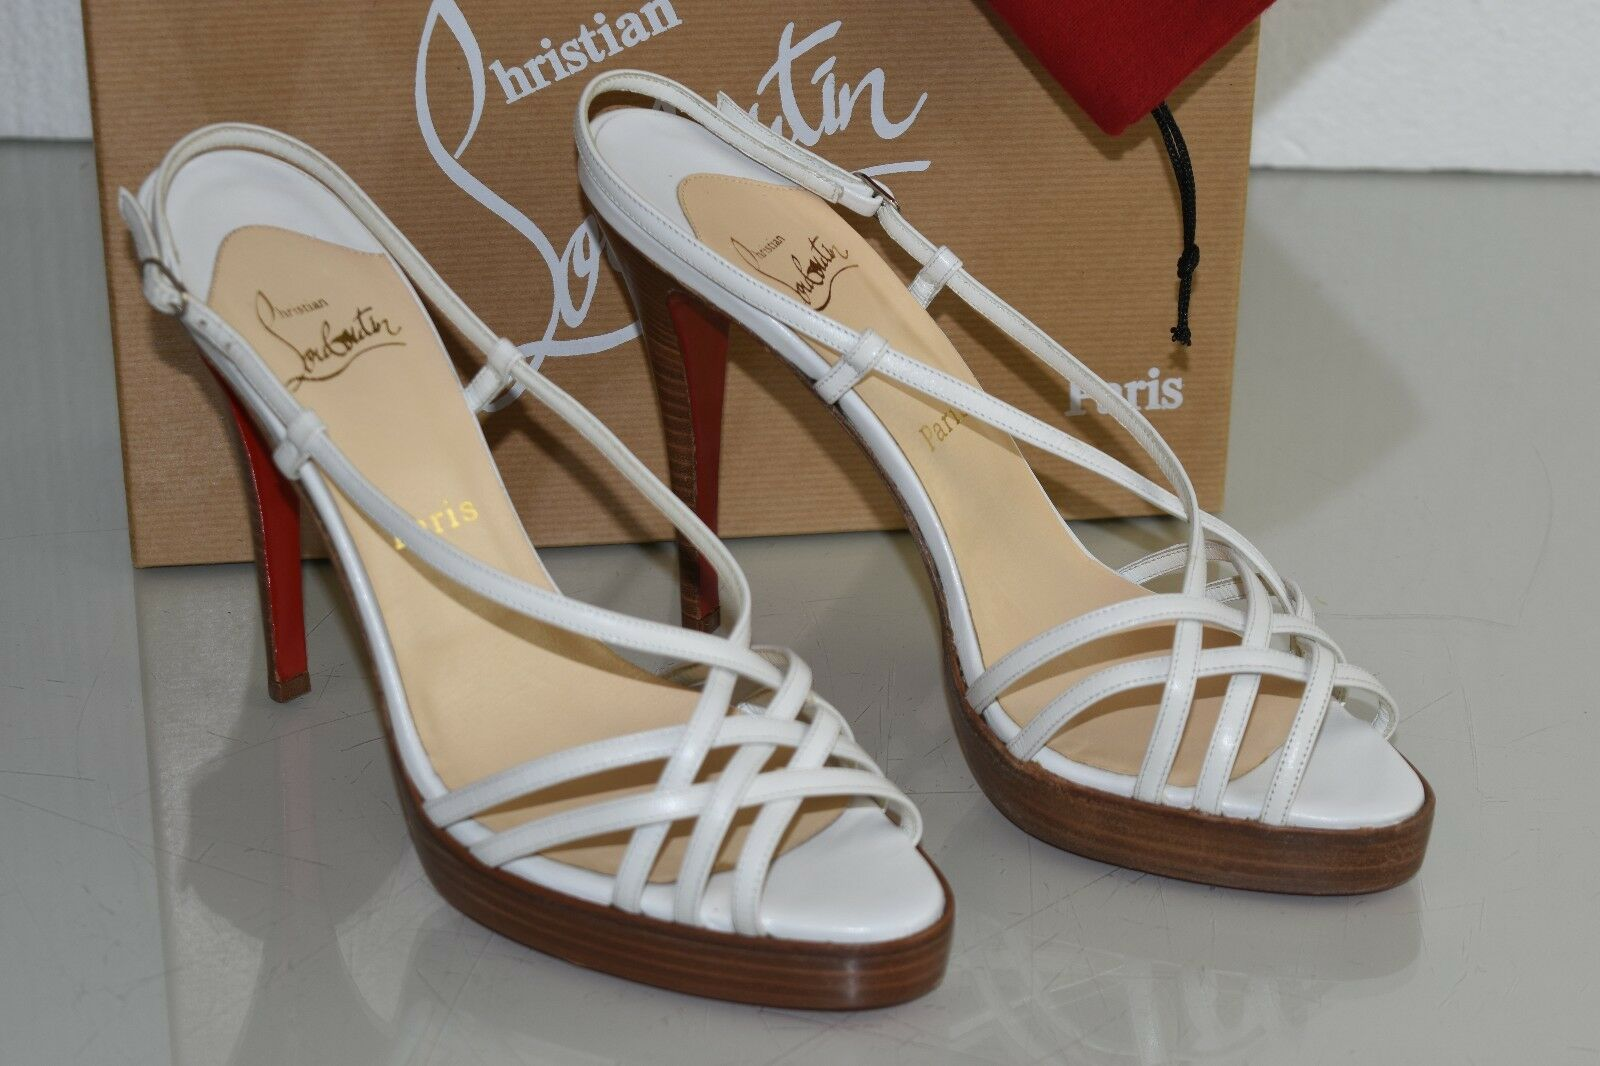 NEW Christian Louboutin CAGE ZEPPA Platform Weiß Leather Sandals schuhe 41